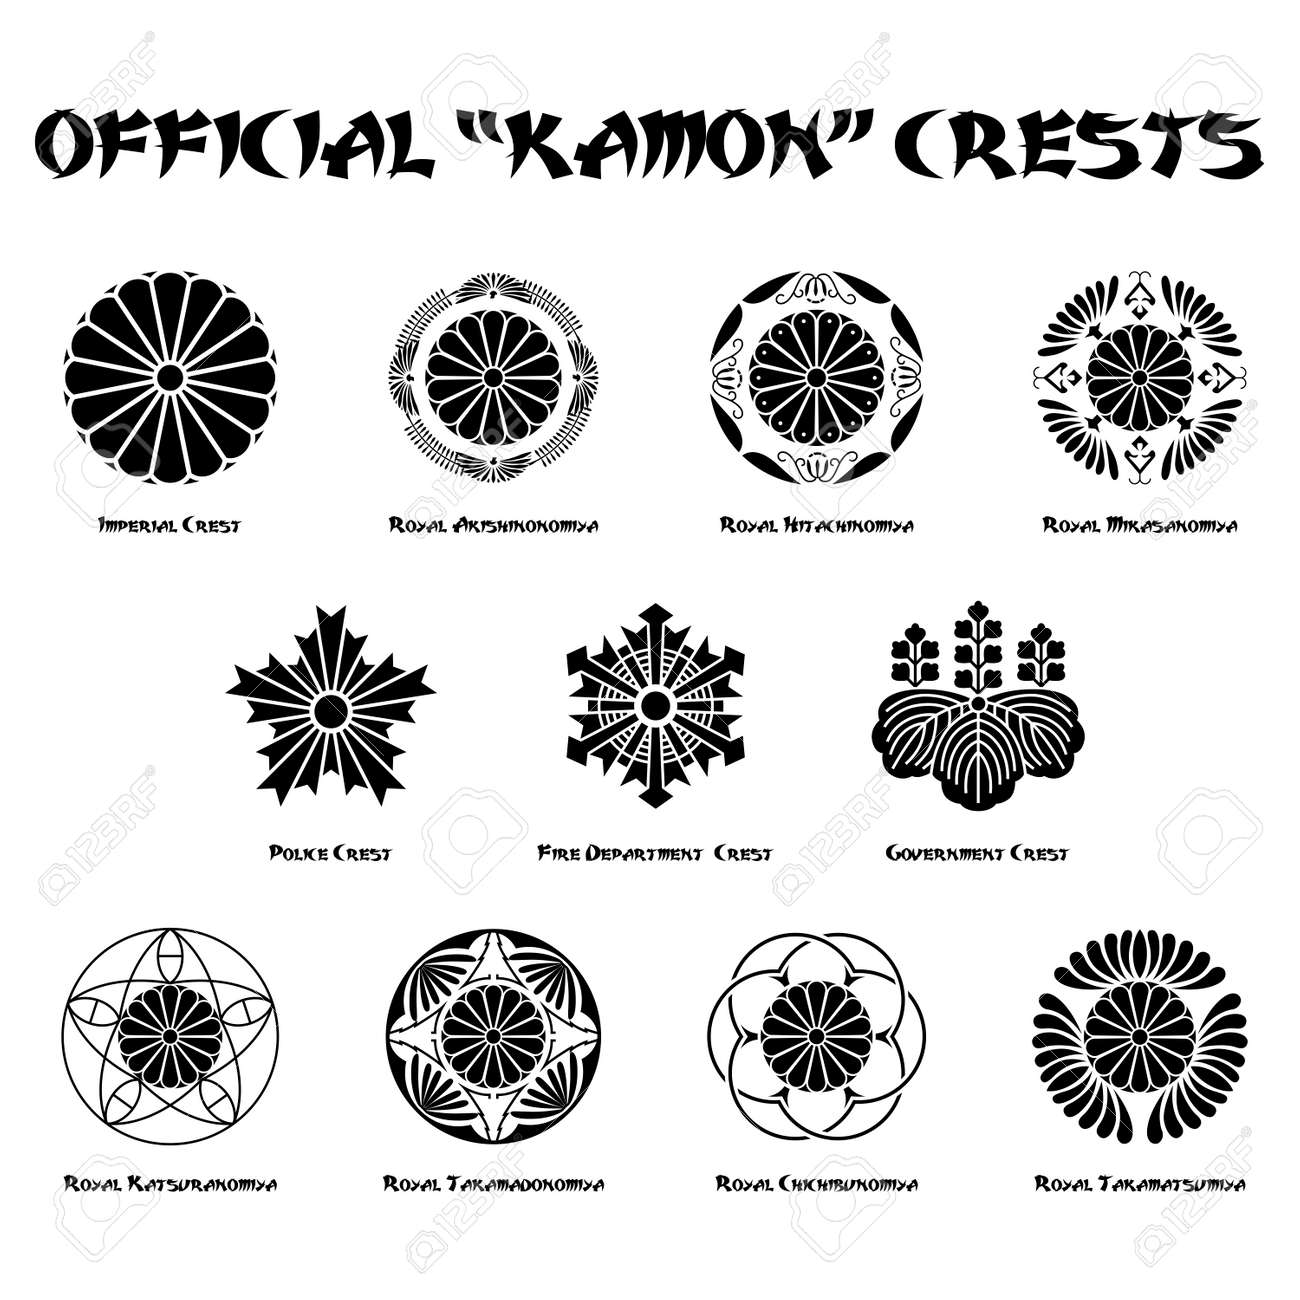 official representative japanese kamon crests on white background - 171405628